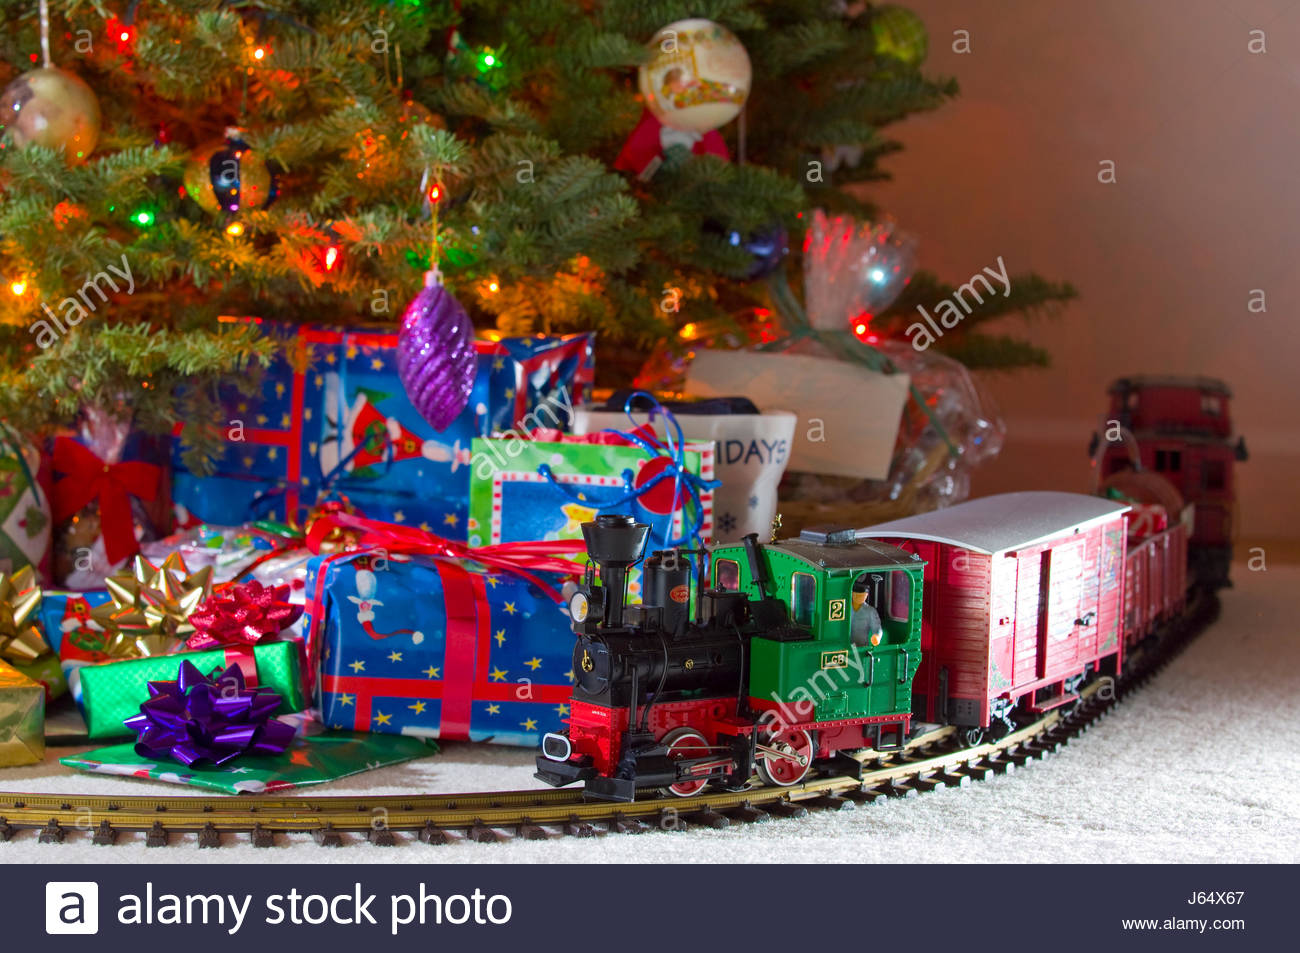 Christmas Tree Train.Toy Electronic Train On Track In Front Of Decorated